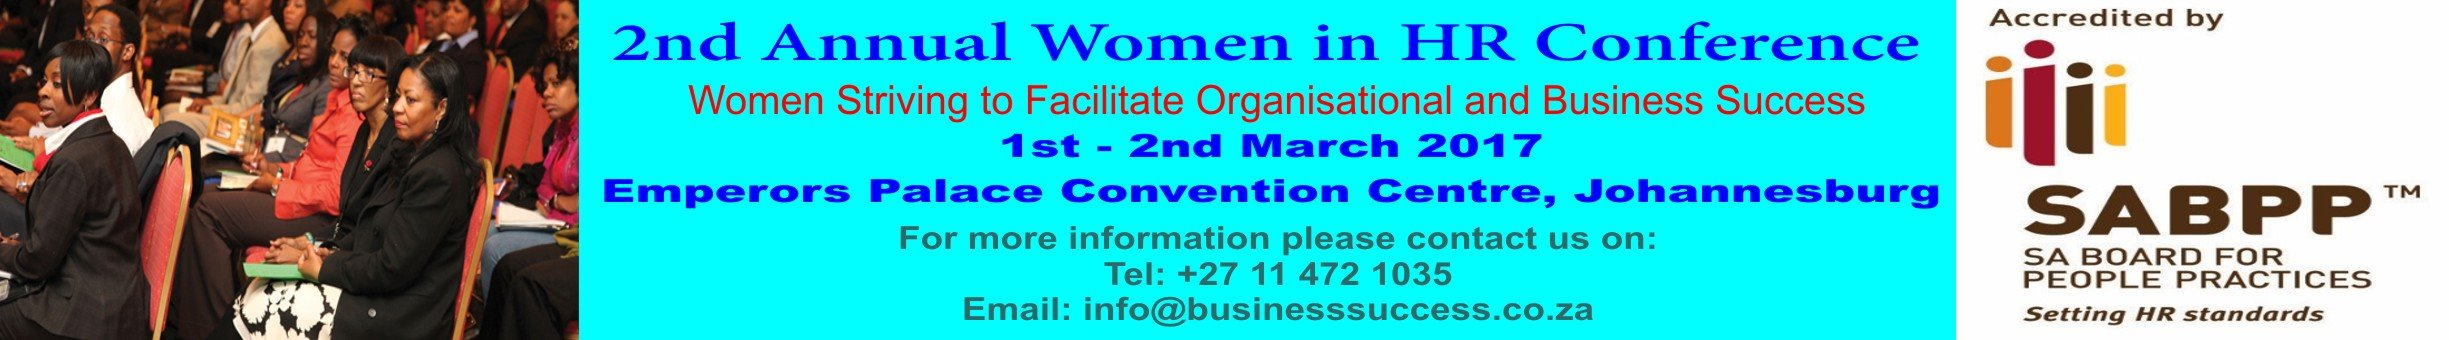 Women in HR Banner